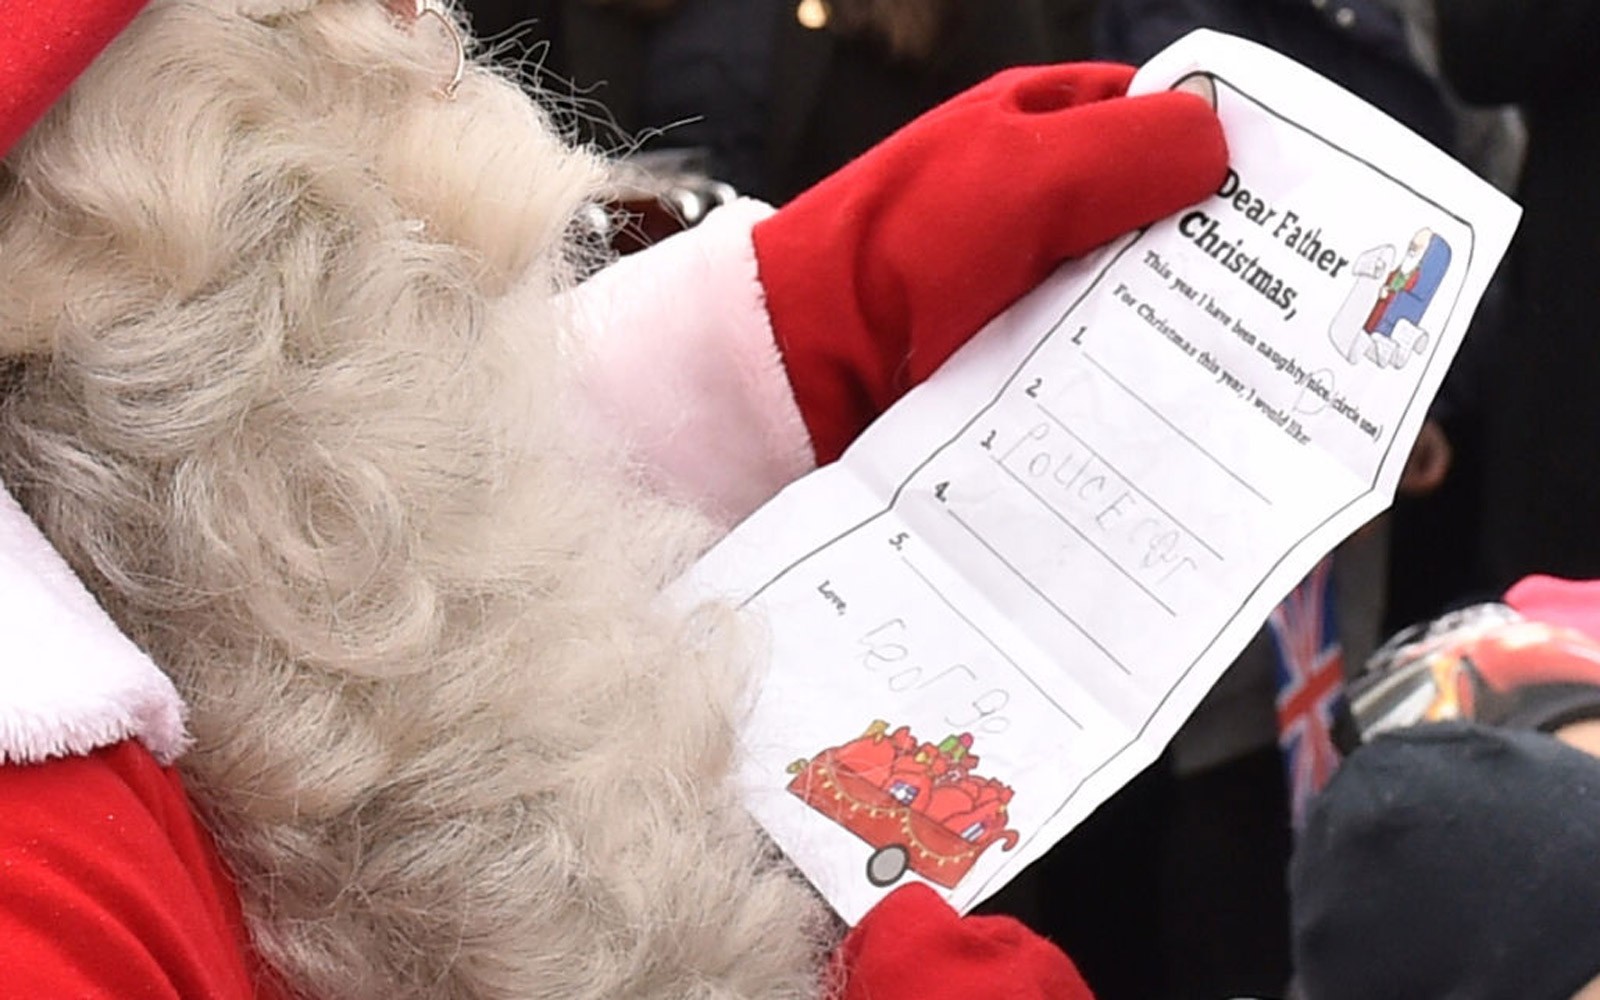 The Duke of Cambridge hands Prince George's Christmas Wish List to a man dressed as Santa Claus as he visits Esplanade Park's Christmas market in Helsinki